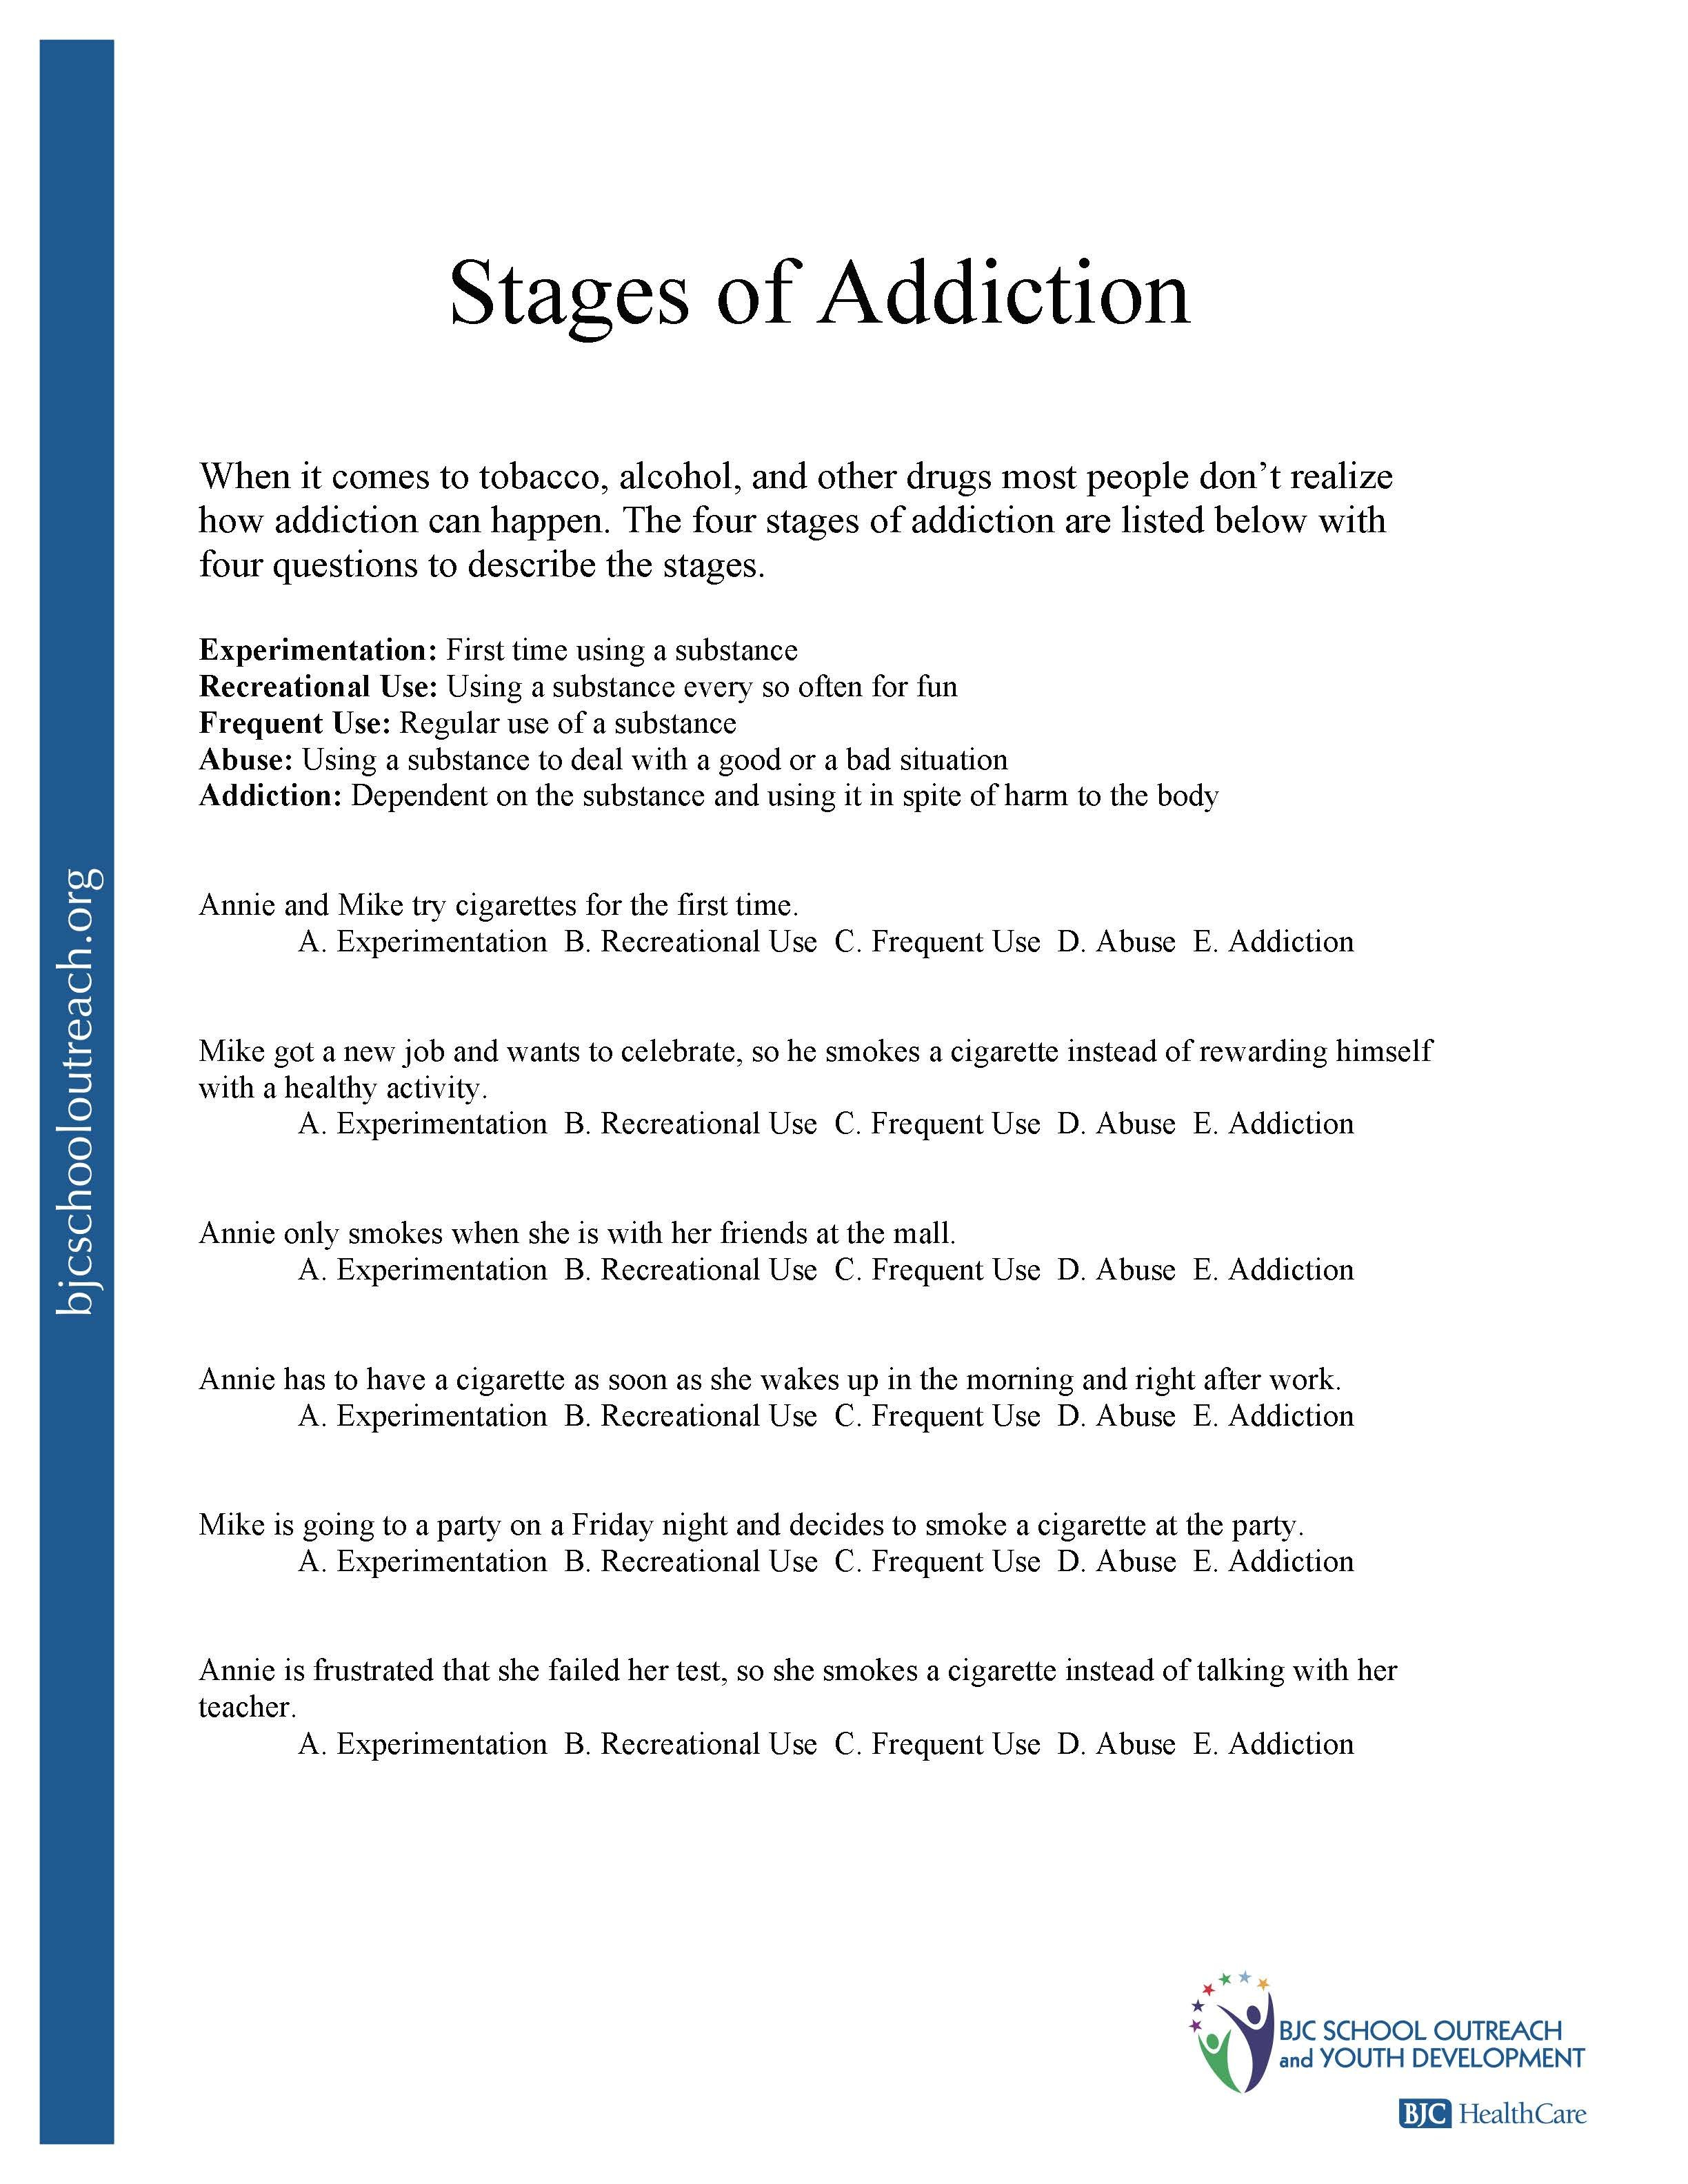 Printable Worksheets As Well As Free Substance Abuse Worksheets For Adults